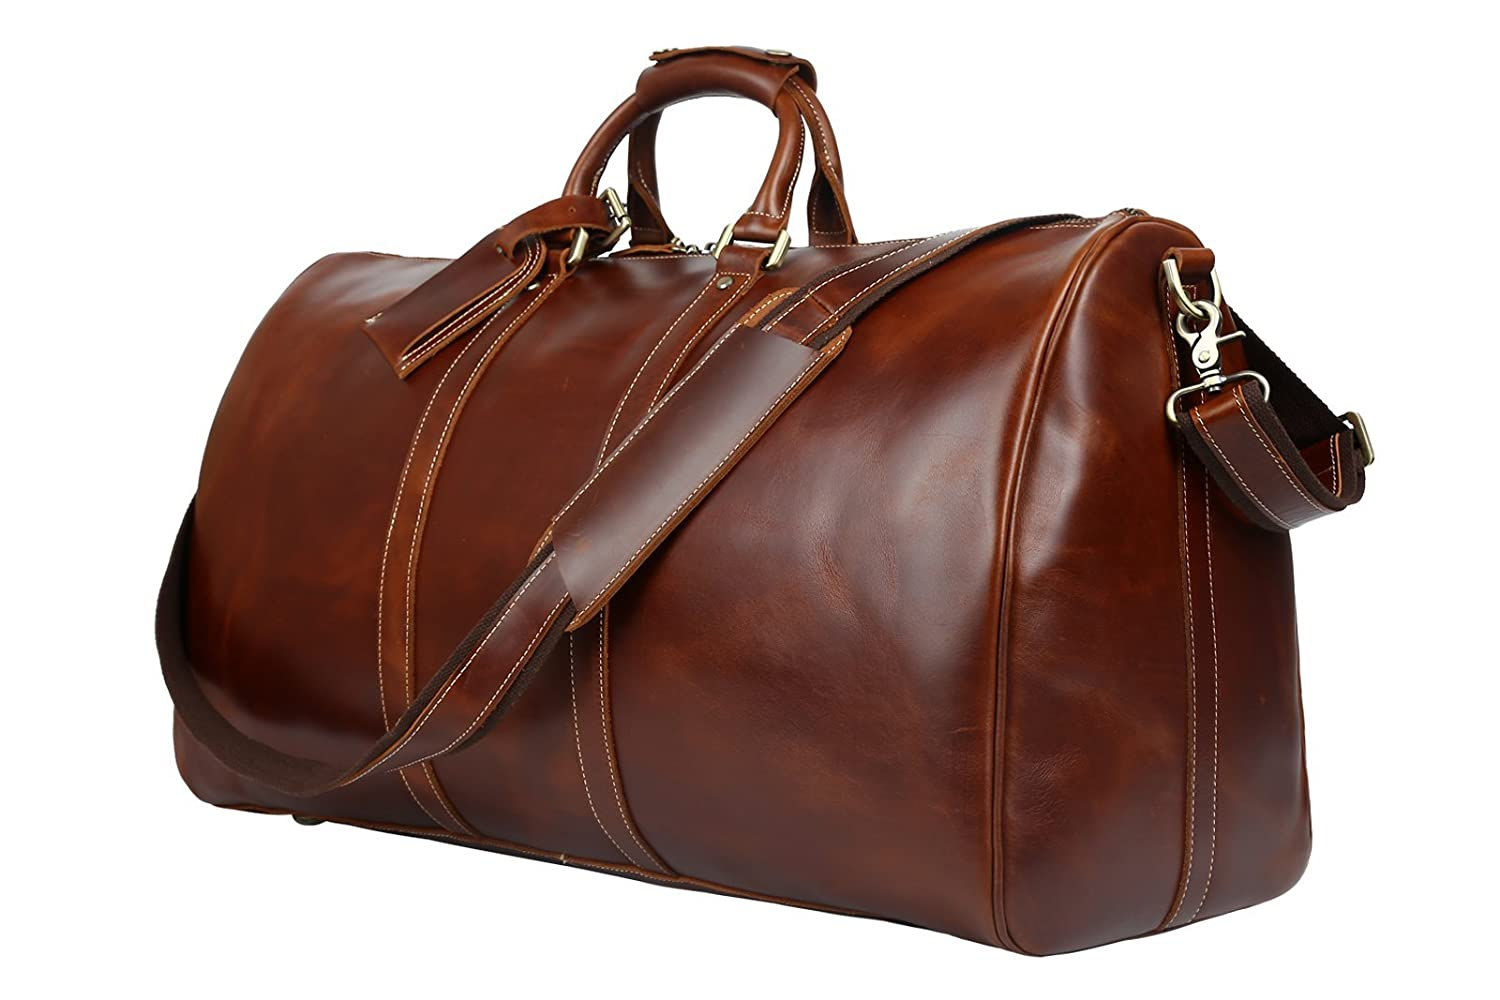 Amazon.com: Huntvp Mens Leather Travel Duffel Bag Vintage ...